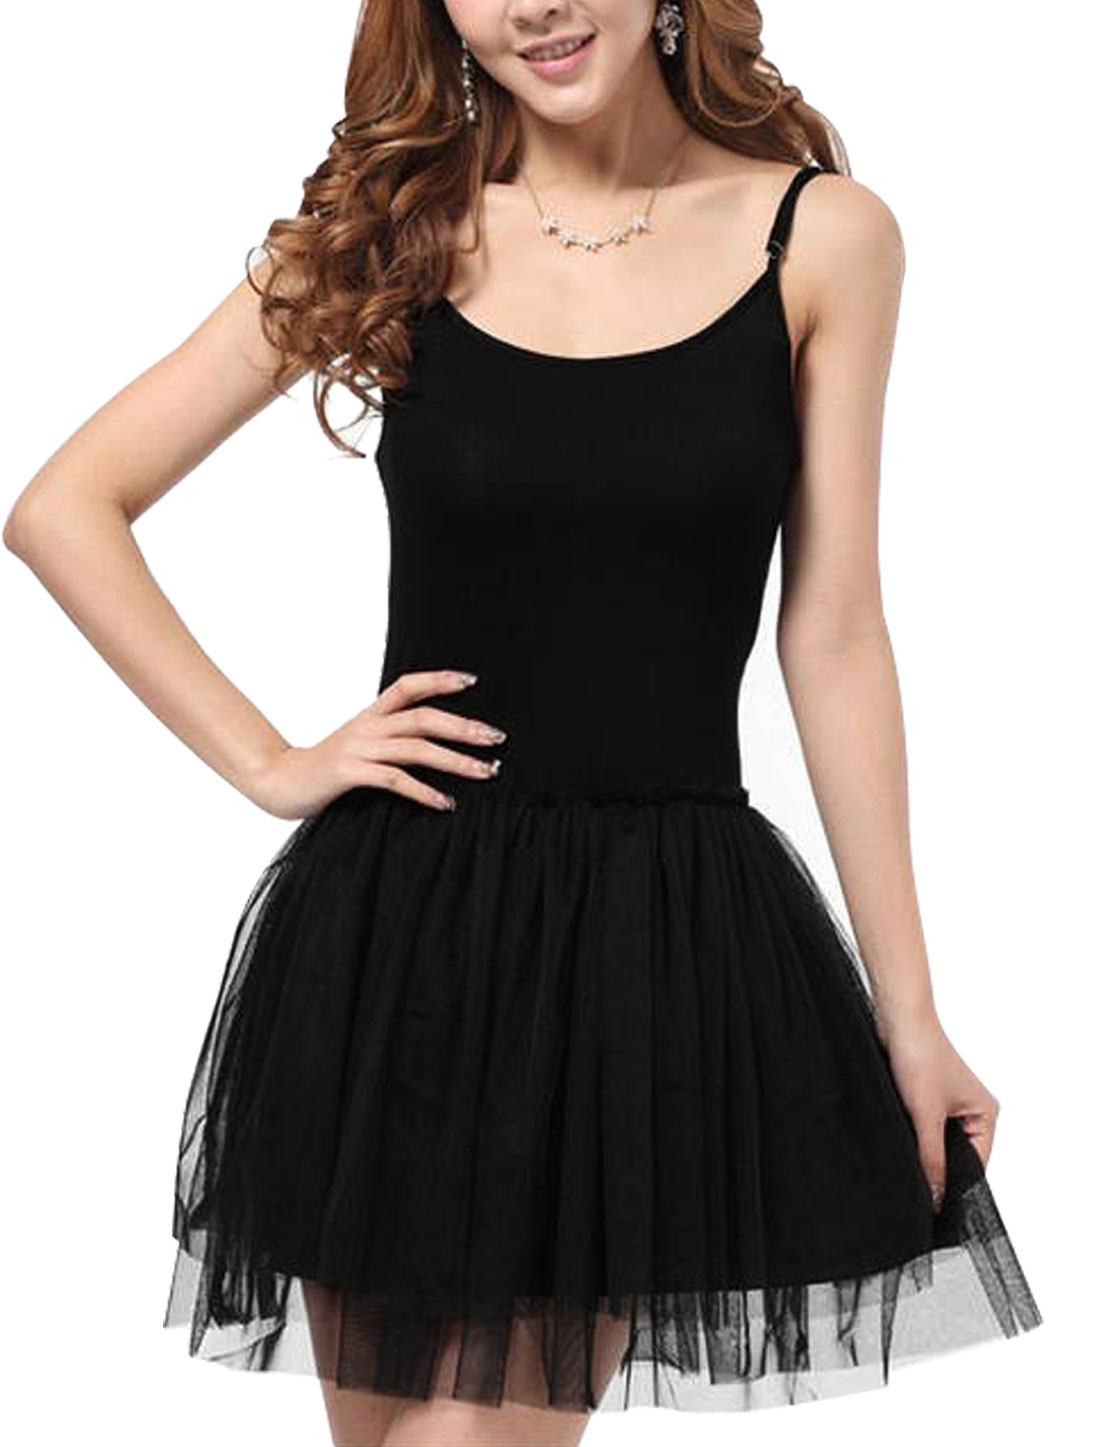 Lady Adjustable Spaghetti Strap Mesh Patchwork Skater Dress Black S